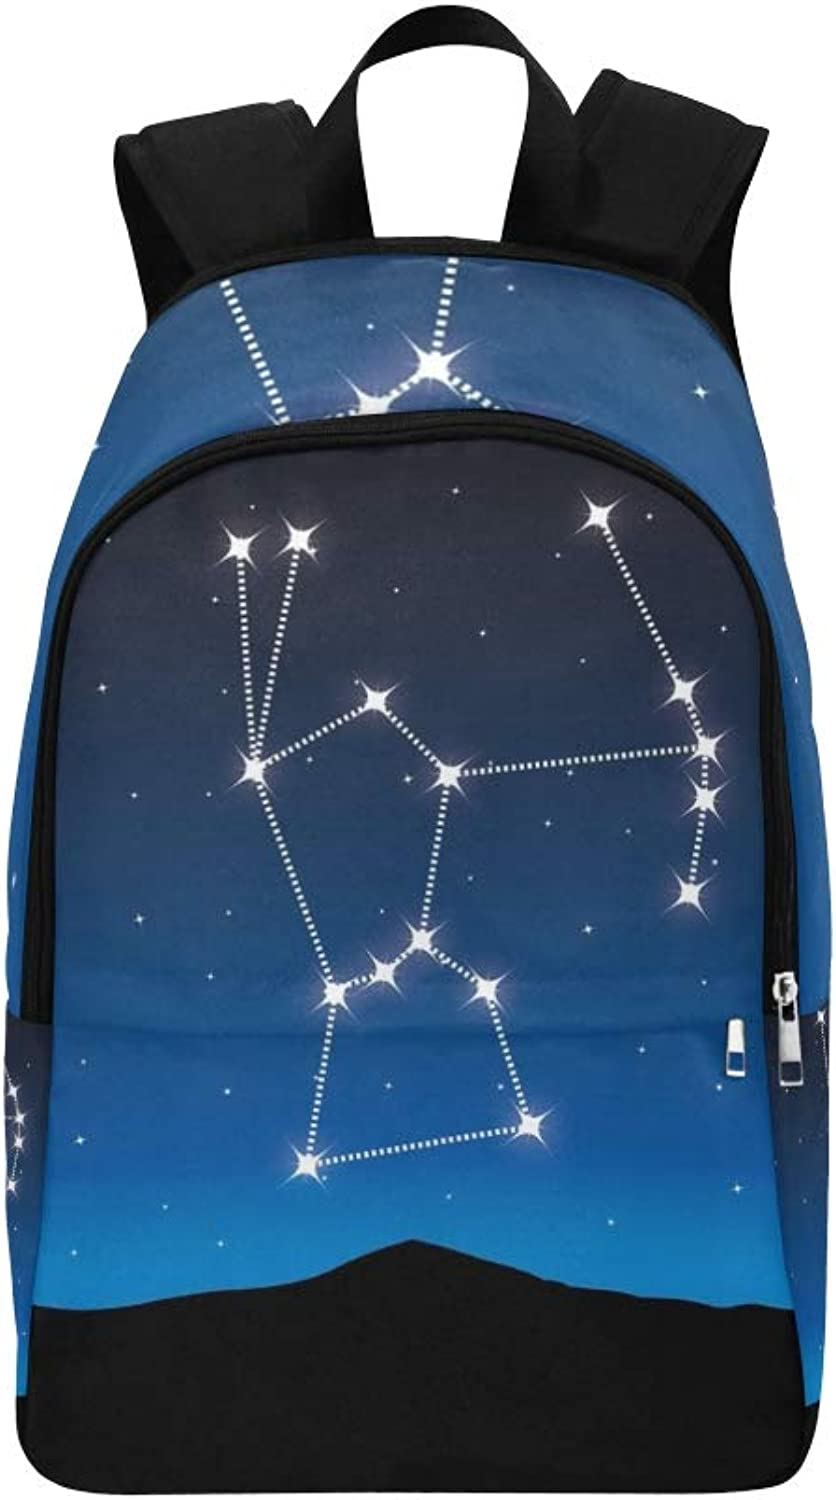 Constellation Orion Casual Daypack Travel Bag College School Backpack for Mens and Women